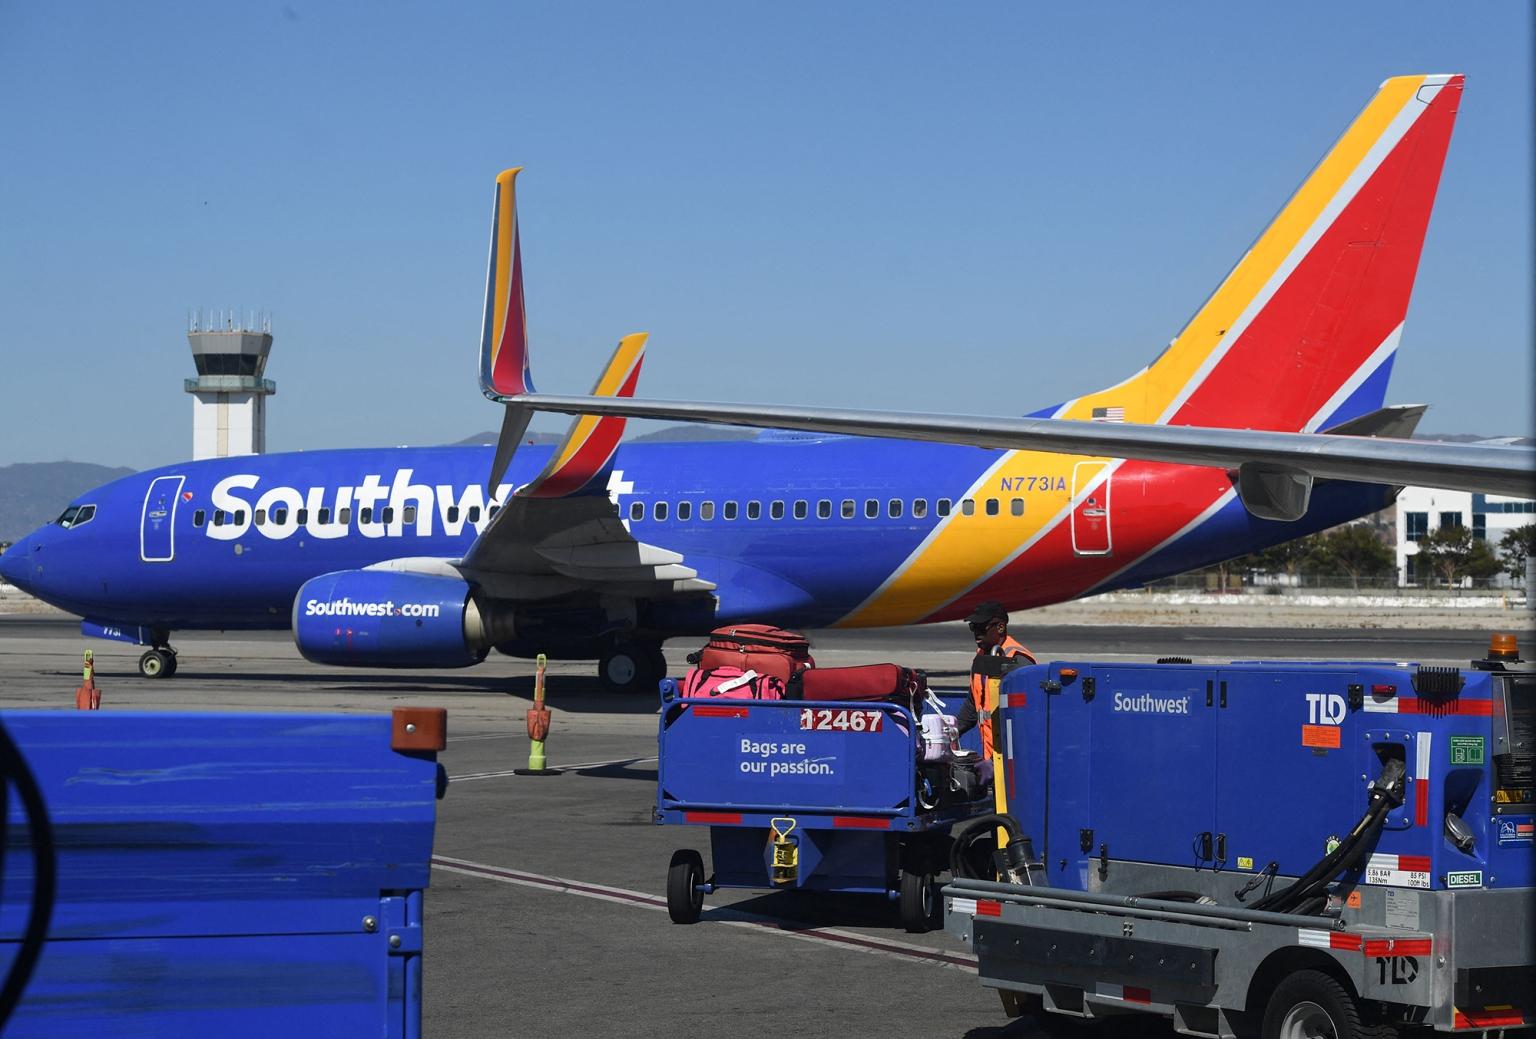 Southwest Airlines Leaving Customers Unhappy With Cancellations